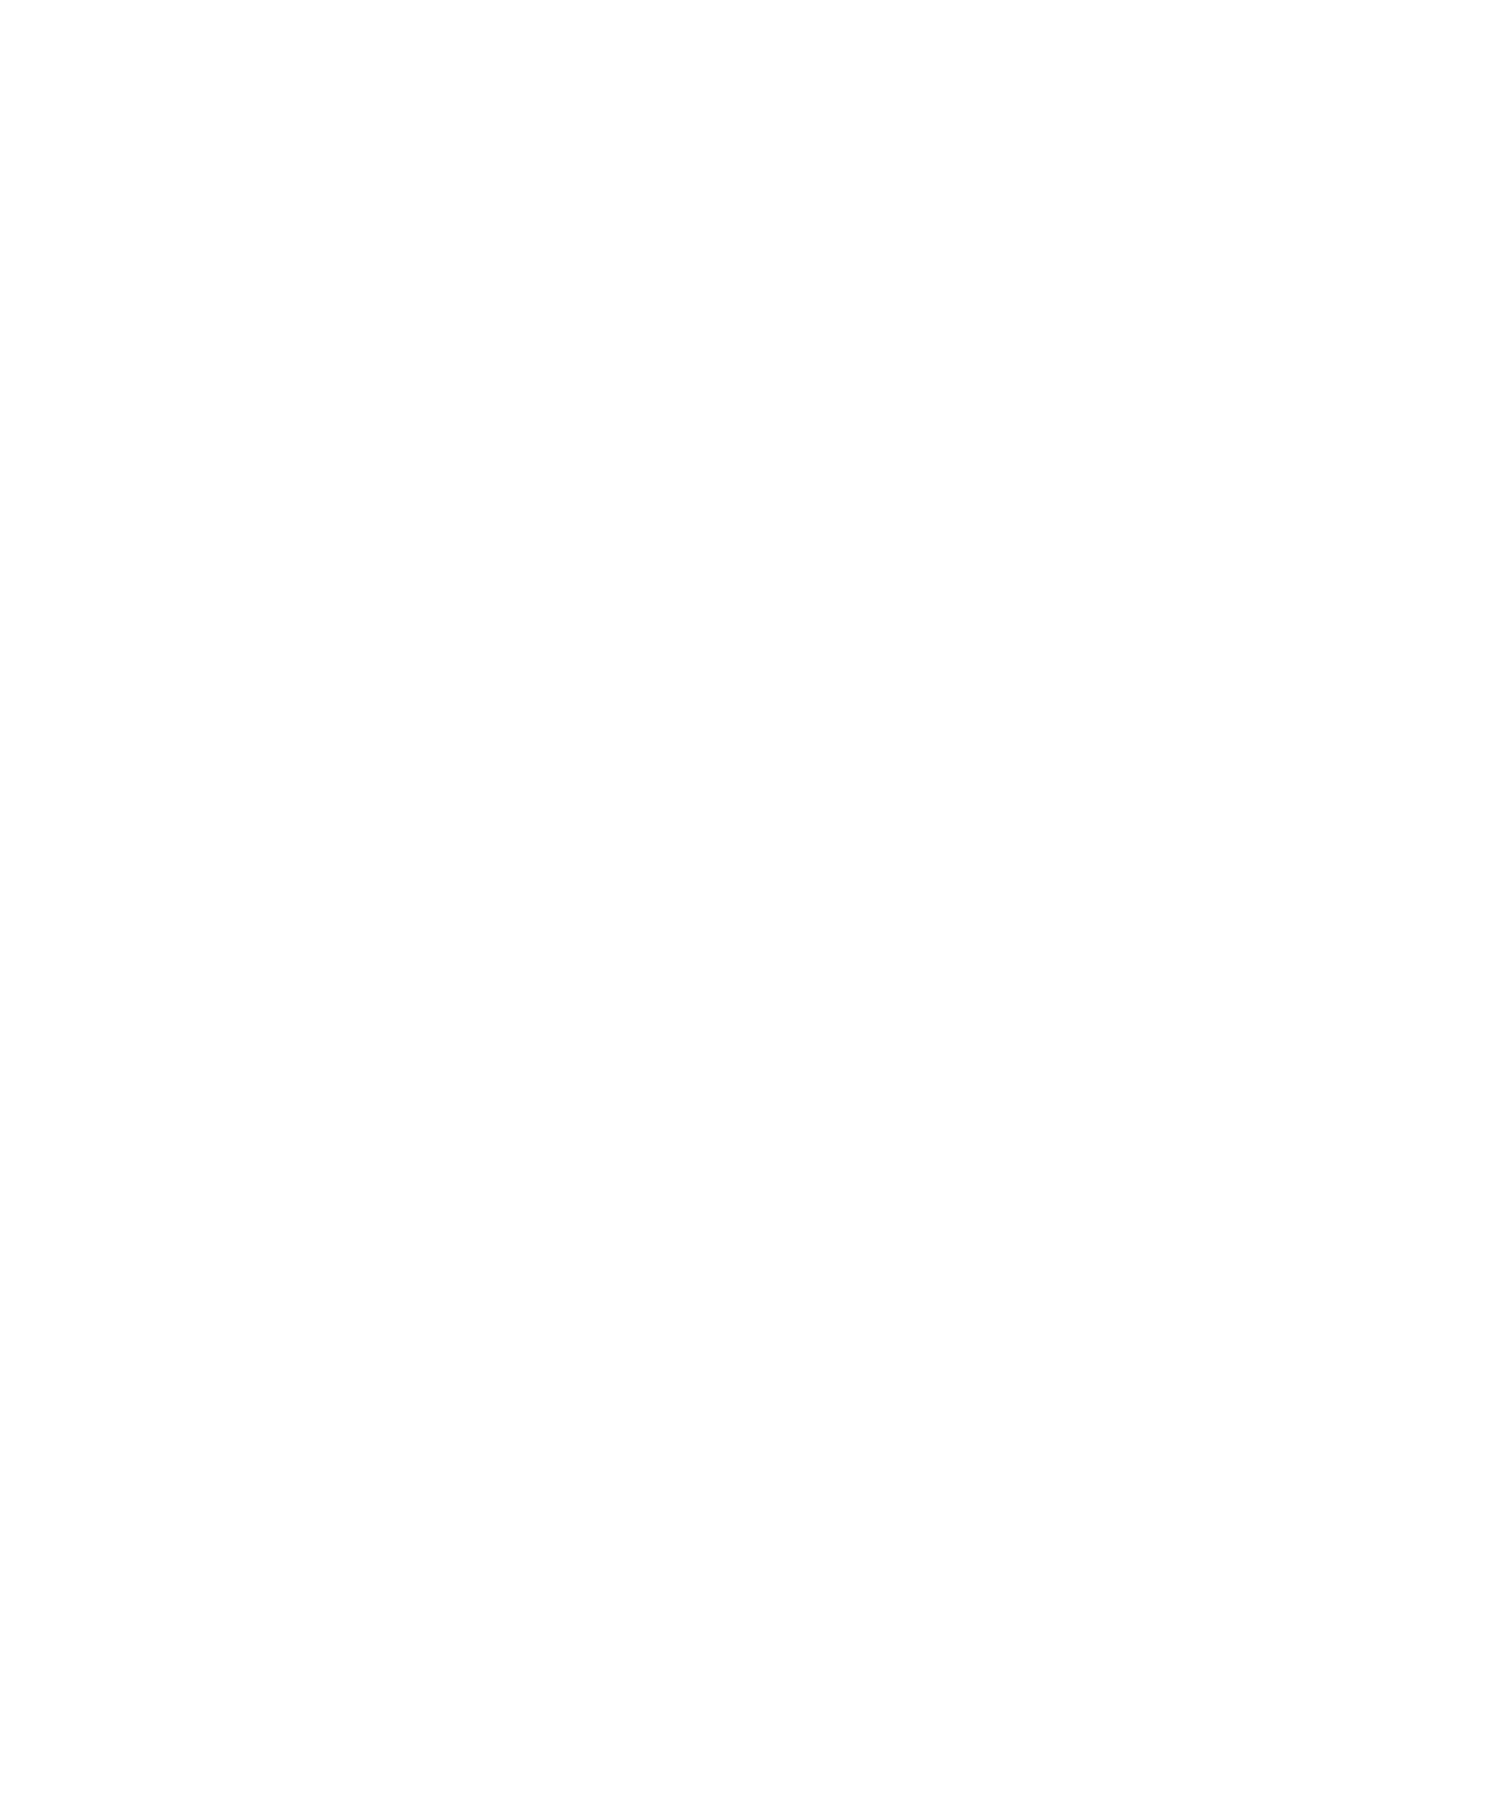 The College Funding Academy